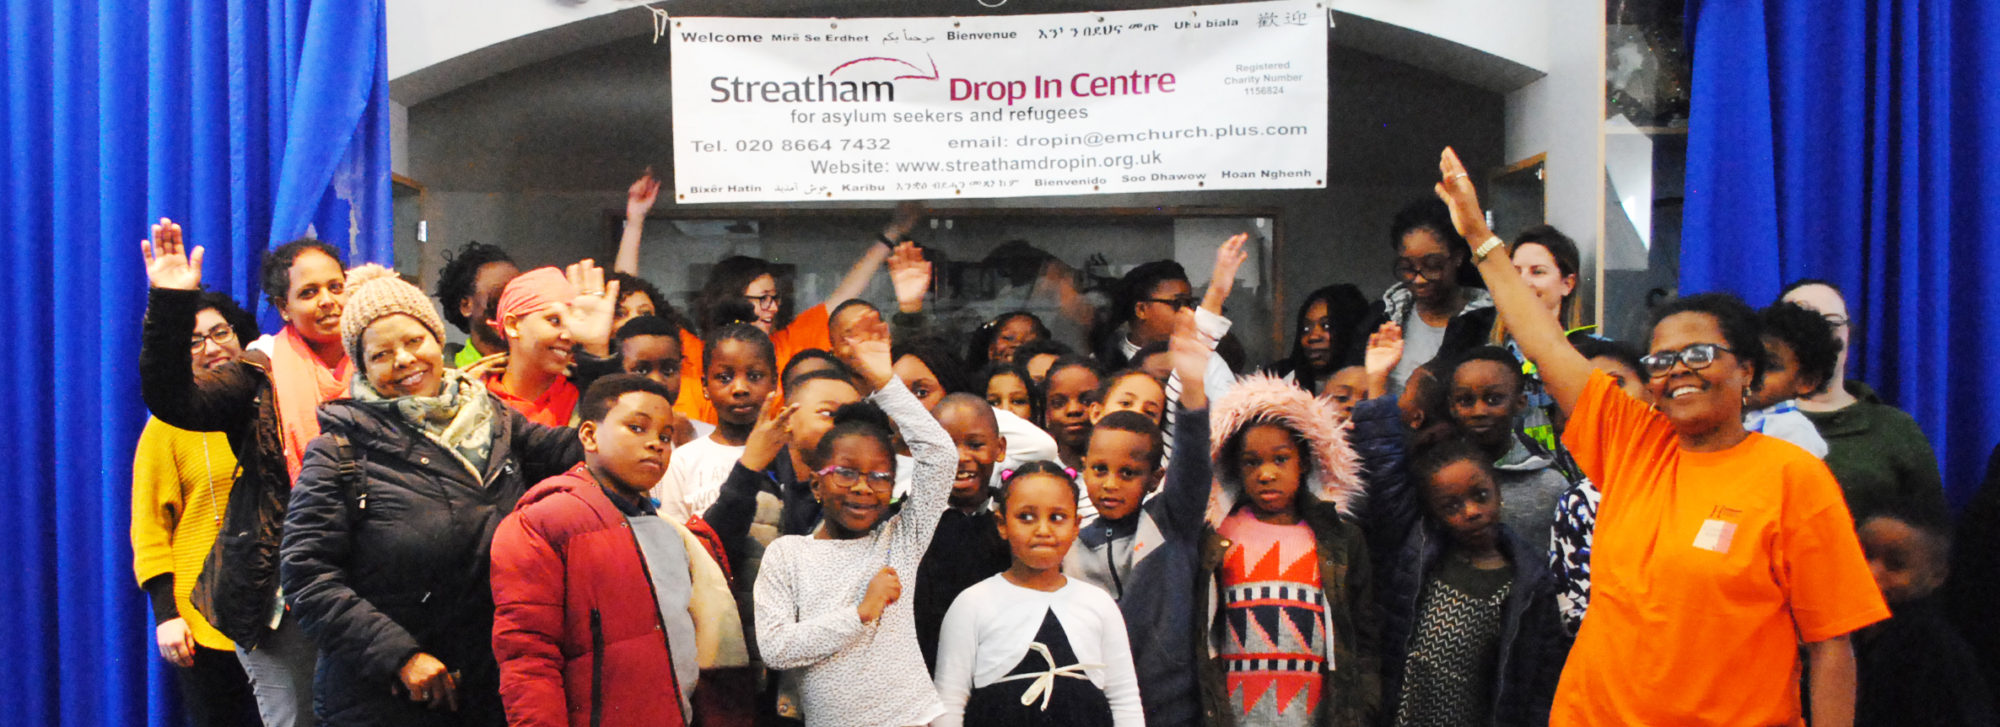 Streatham Drop in Centre for Asylum Seekers and Refugees